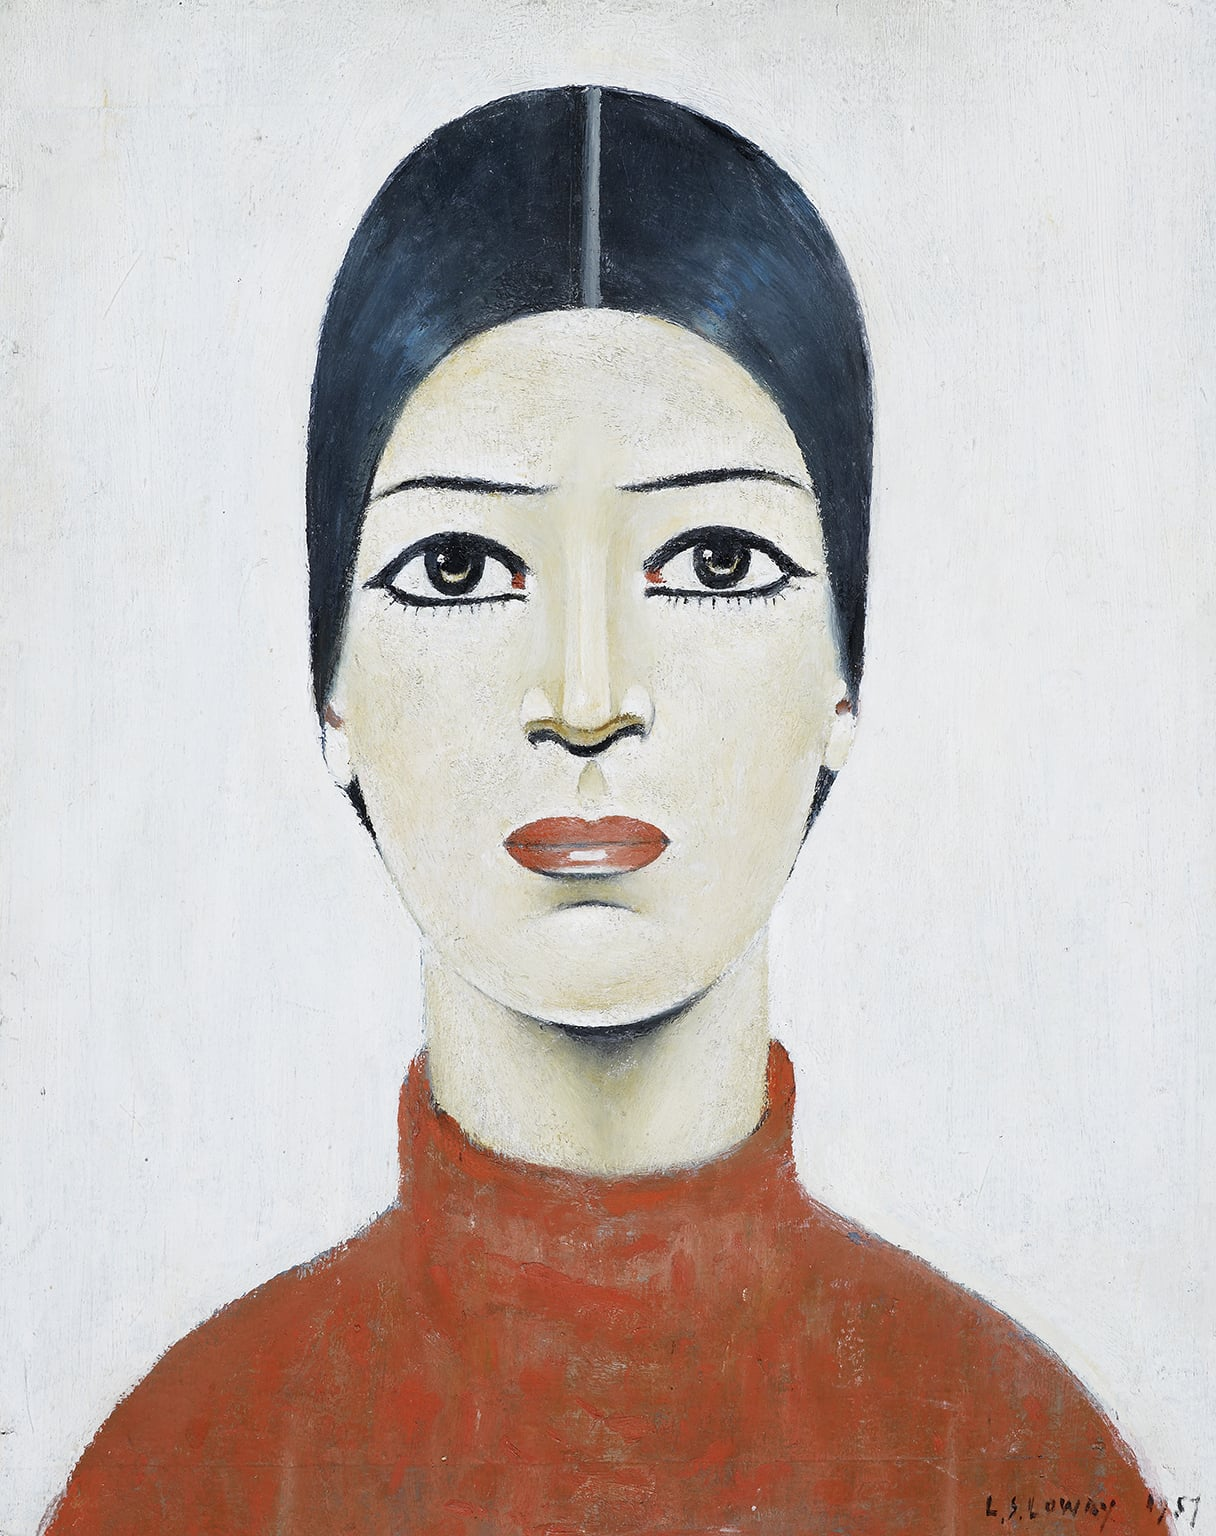 5. Portrait of Ann, 1957. The Lowry, Salford - © The Lowry Collection, Salford